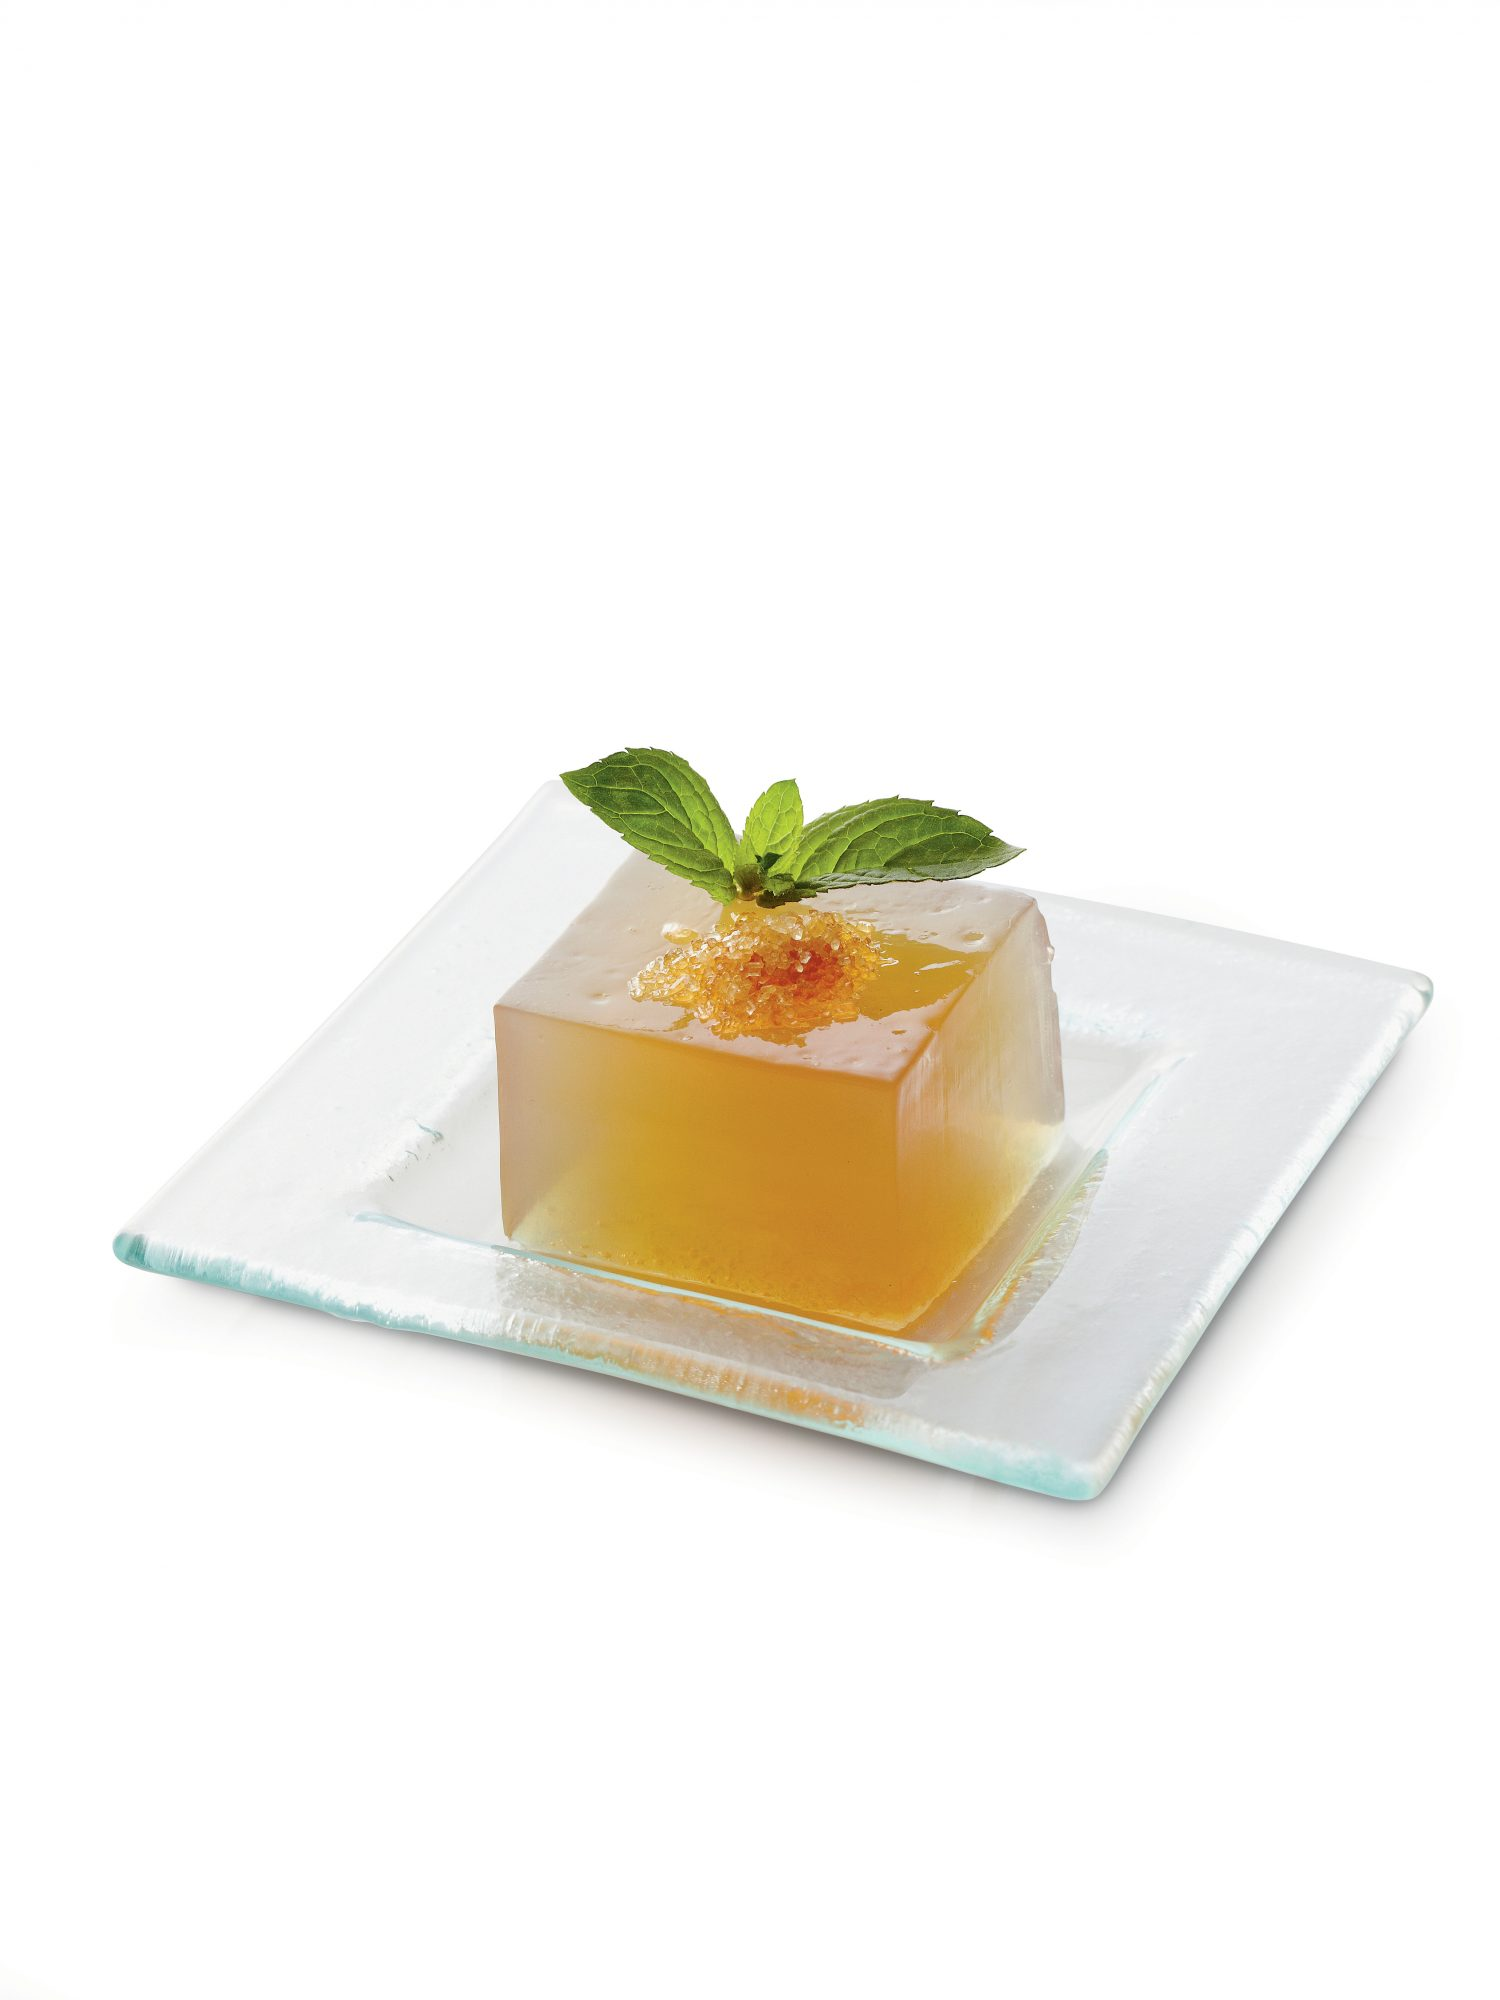 Mint Julep Gelées Recipe